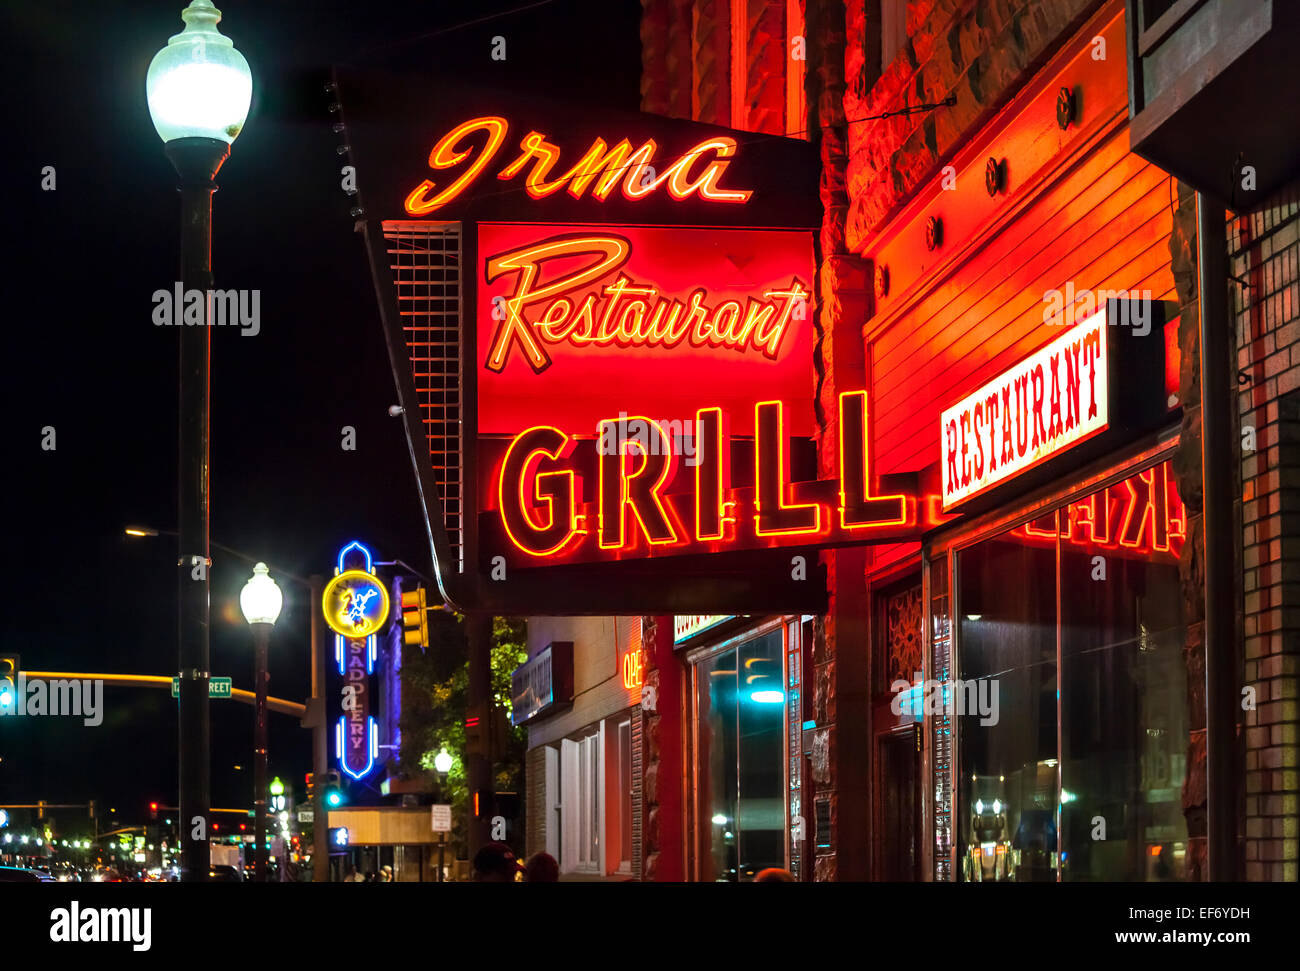 Irma Hotel Restaurant Grill in Cody Wyoming. Vintage Neon Sign. - Stock Image